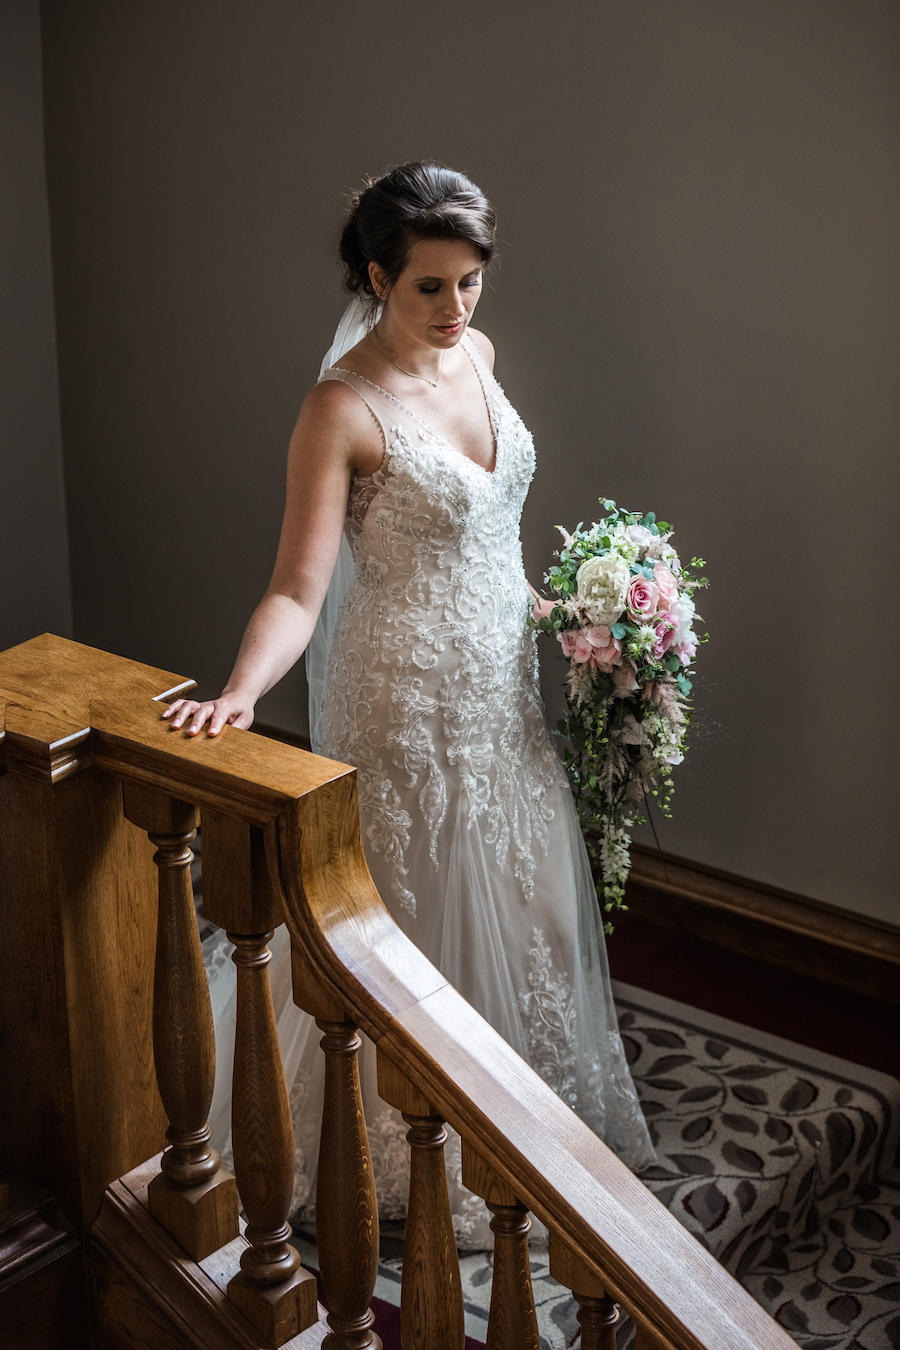 Wedding editorial from Wivenhoe House, image credit Ayshea Goldberg Photography (10)